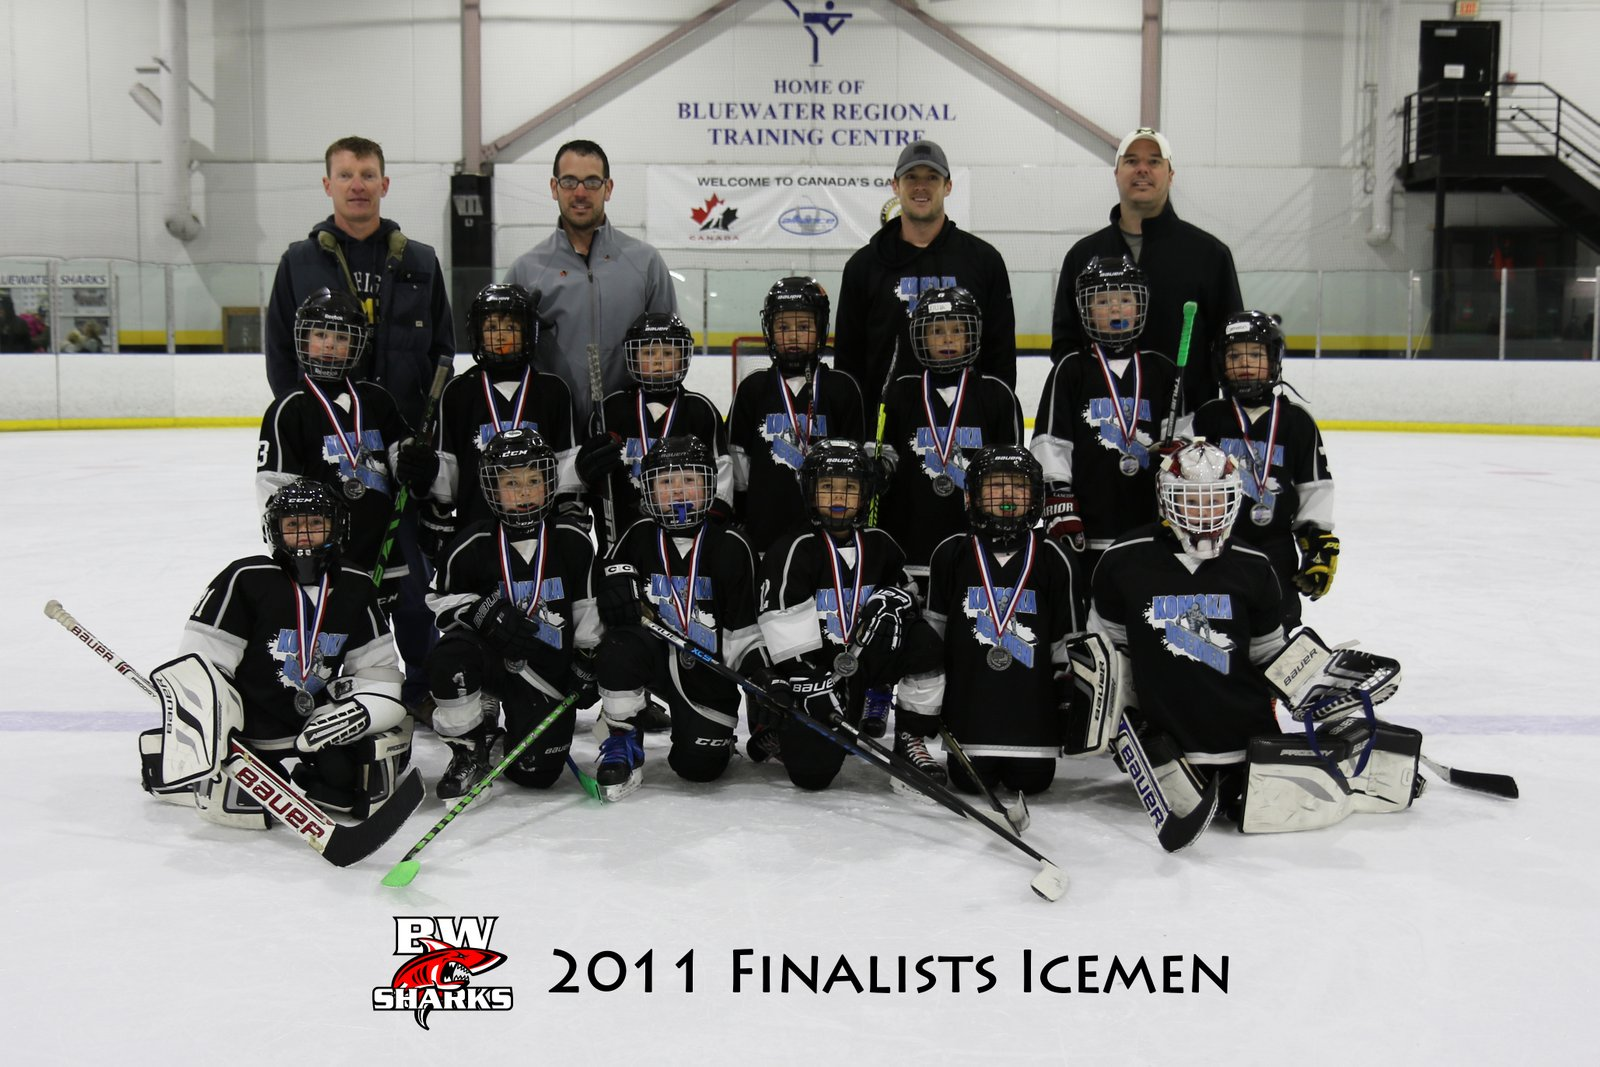 2011-Finalists-Icemen-SilverPeak-Studios-Canada-Sarnia-Bluewater-Sharks-Tournament-001